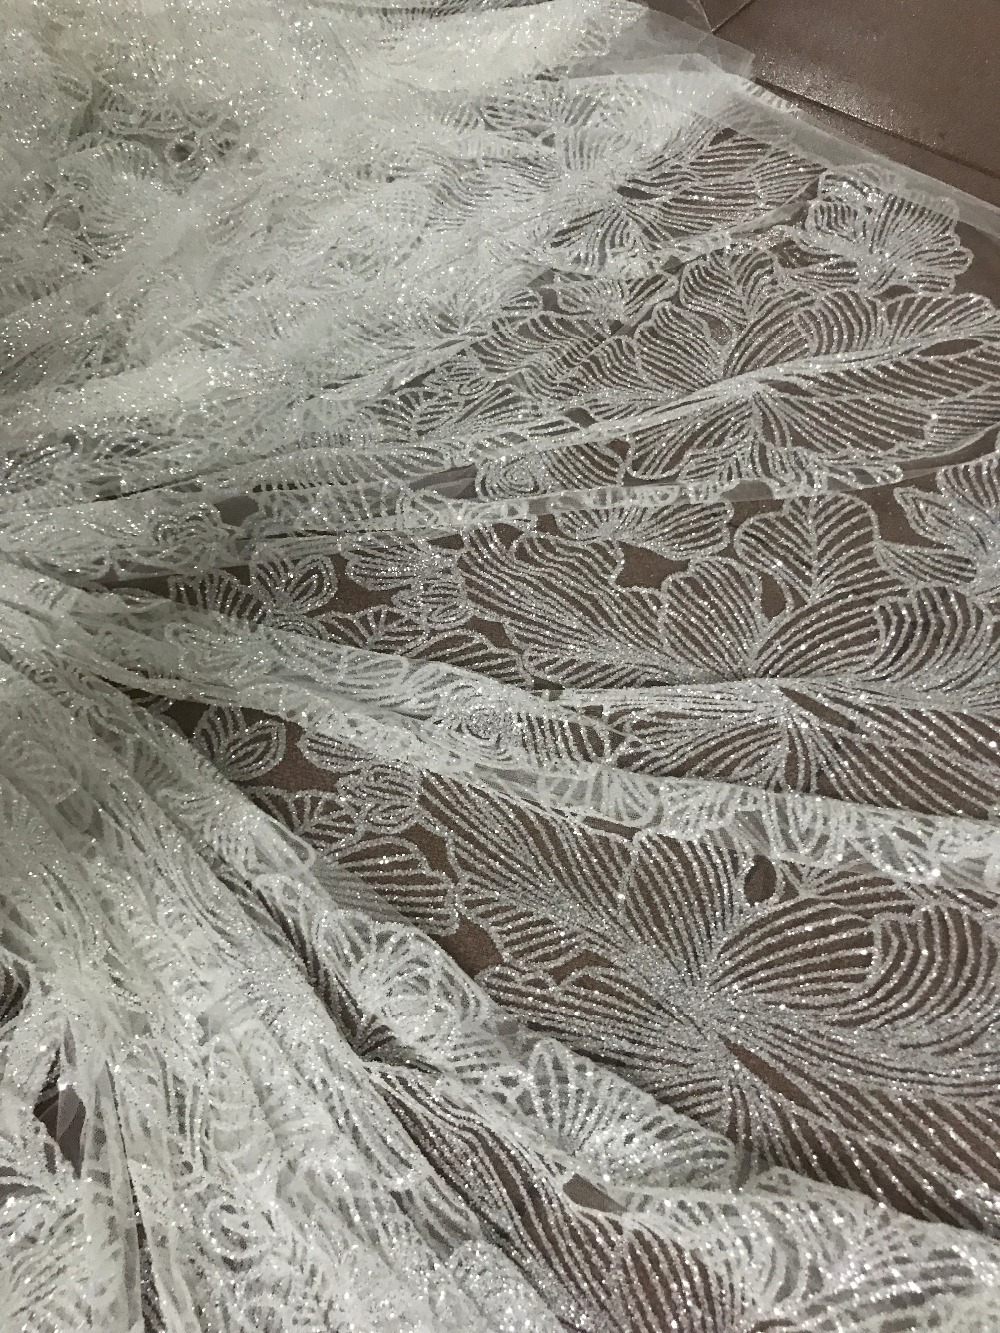 Hot selling Sat 10.2716 glued glitter sequins lace fabric African French net tulle Lace Fabric for party-in Lace from Home & Garden    2